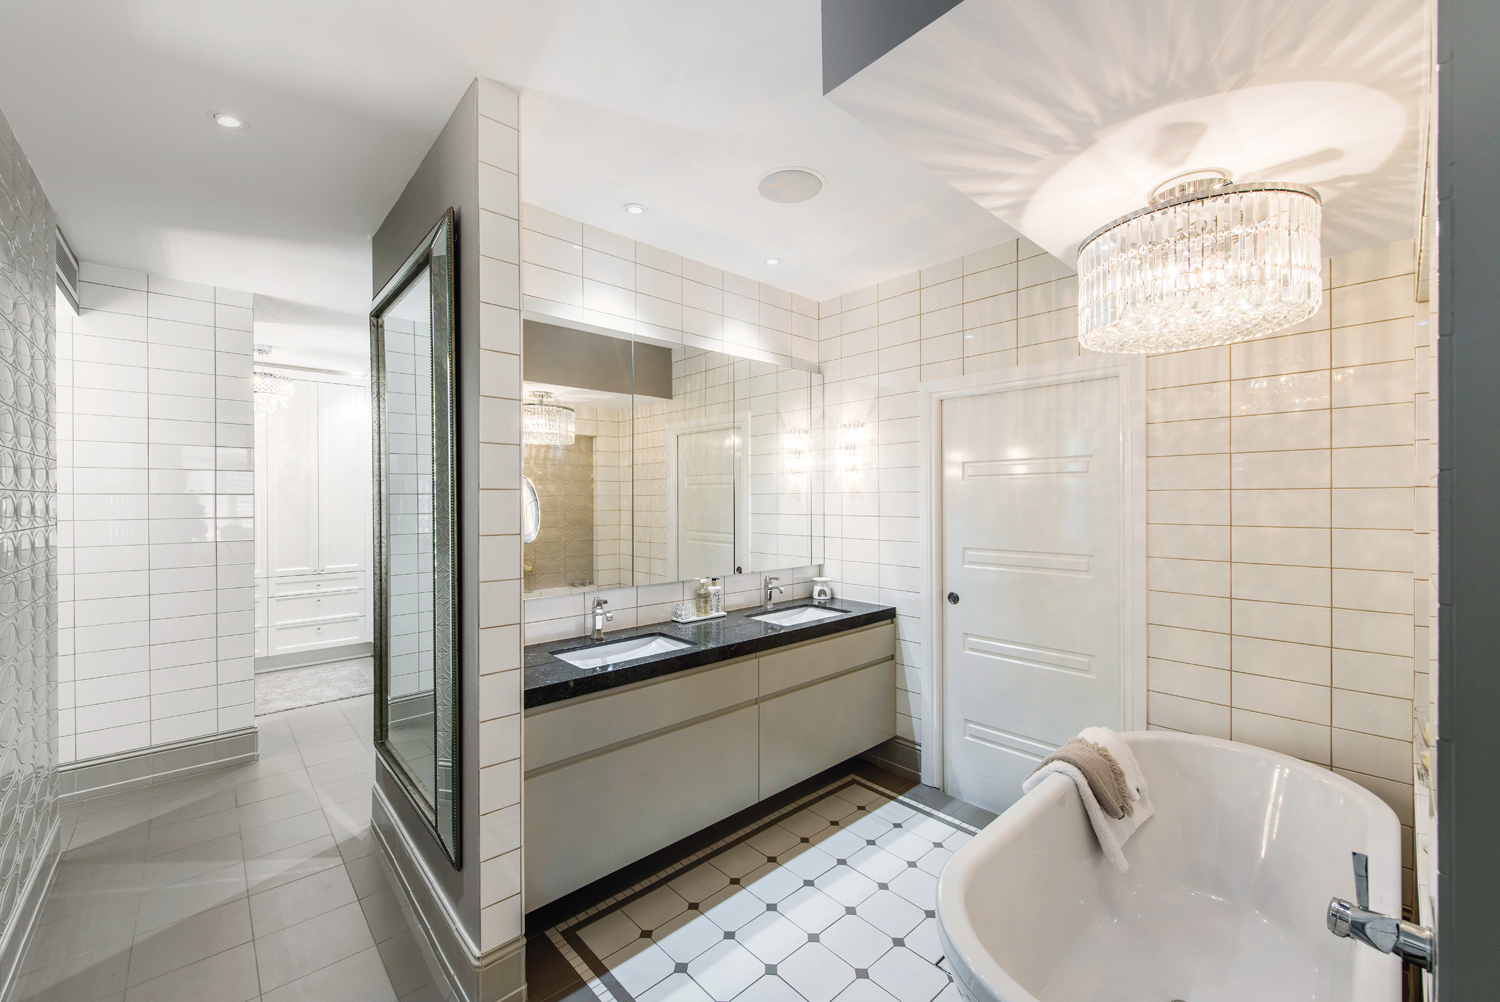 A bathroom that is the epitome of luxury